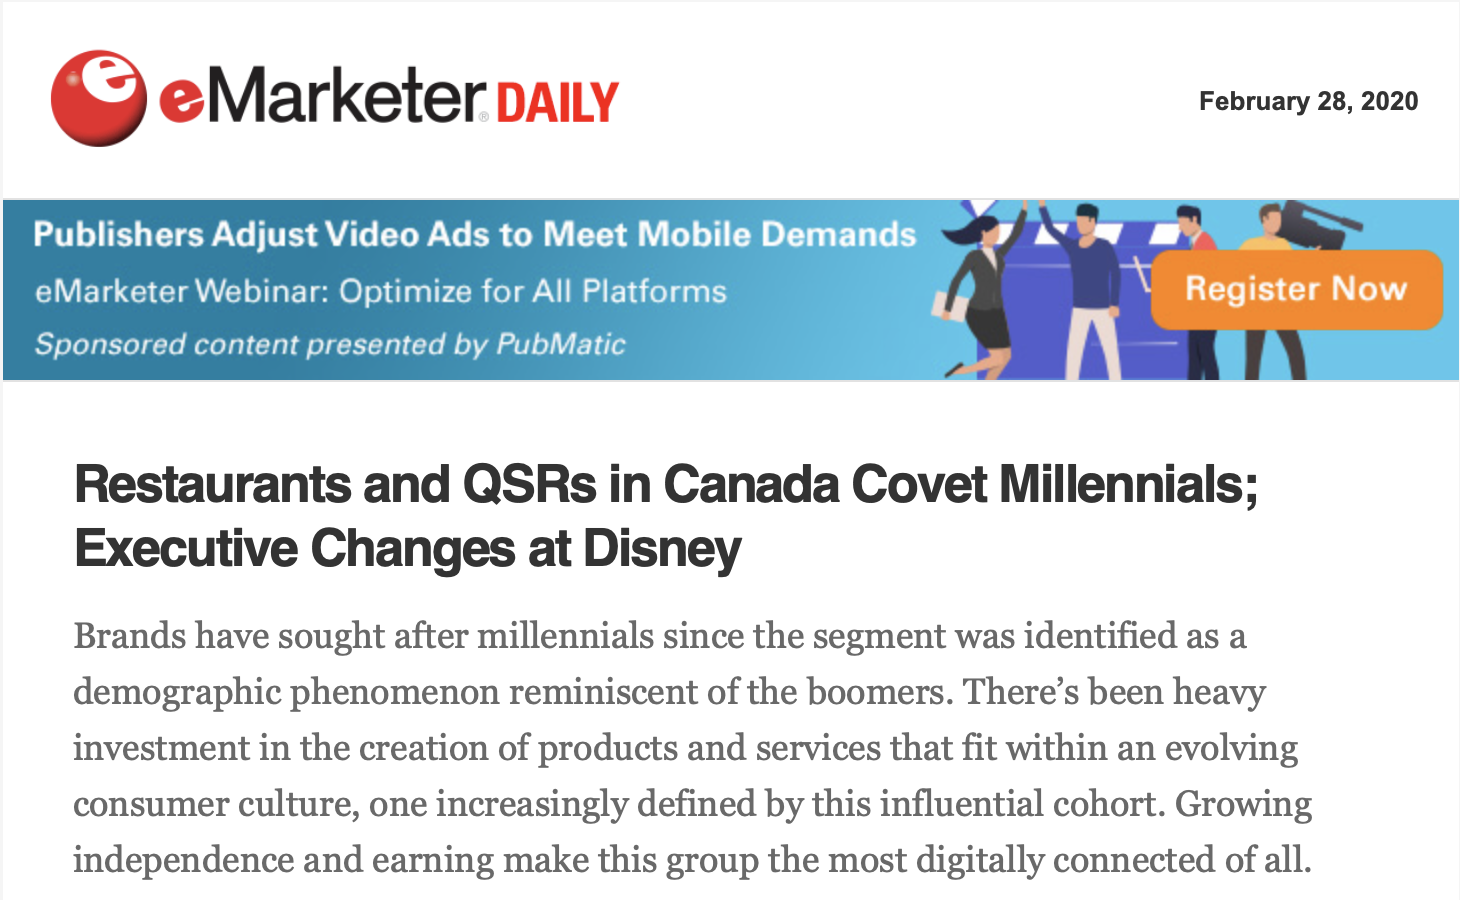 Promoting webinars through sponsored email from Emarketer.